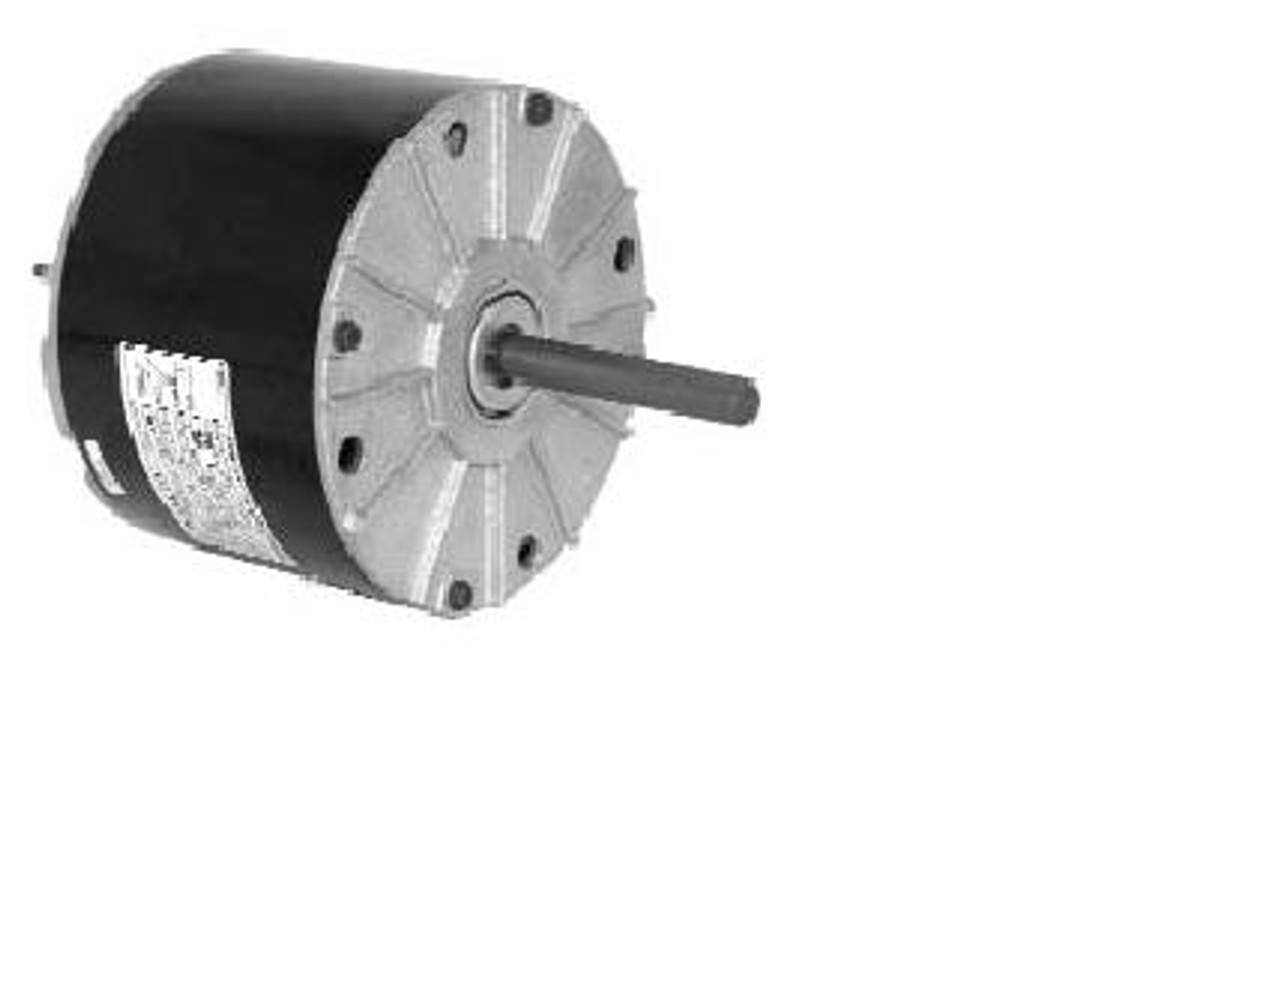 E-OYK1006 (open box) OEM Direct Replacement Motor